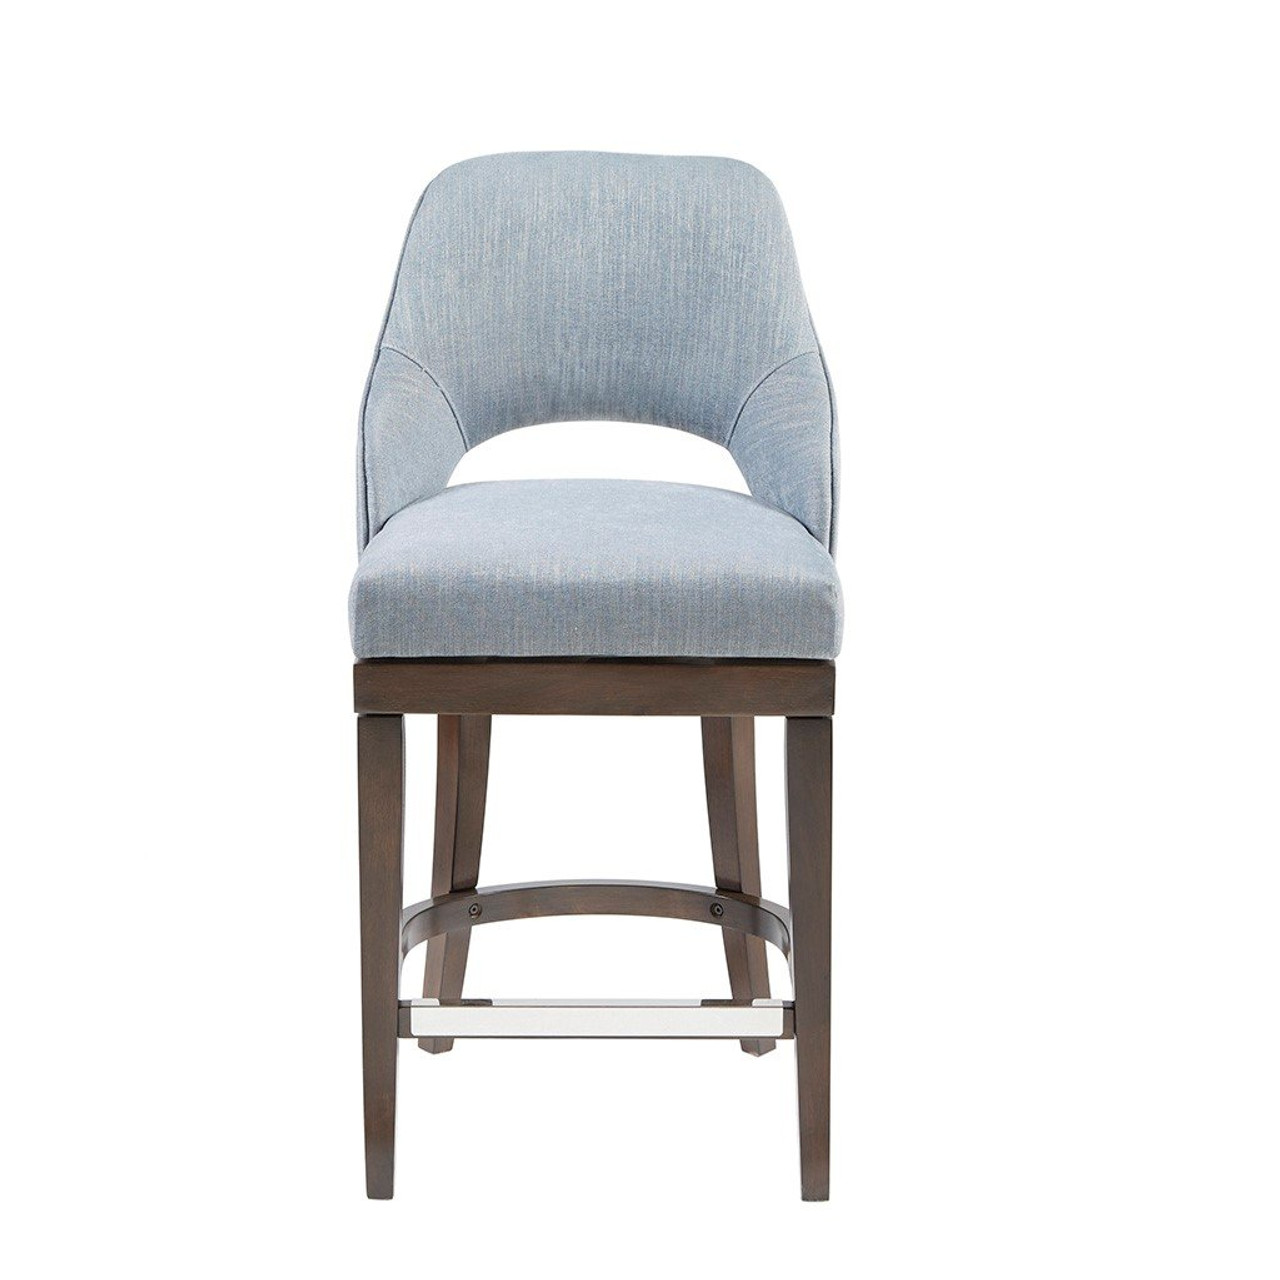 Madison Park Jillian Counter Stool With Swivel Seat MP9 9 By Olliix